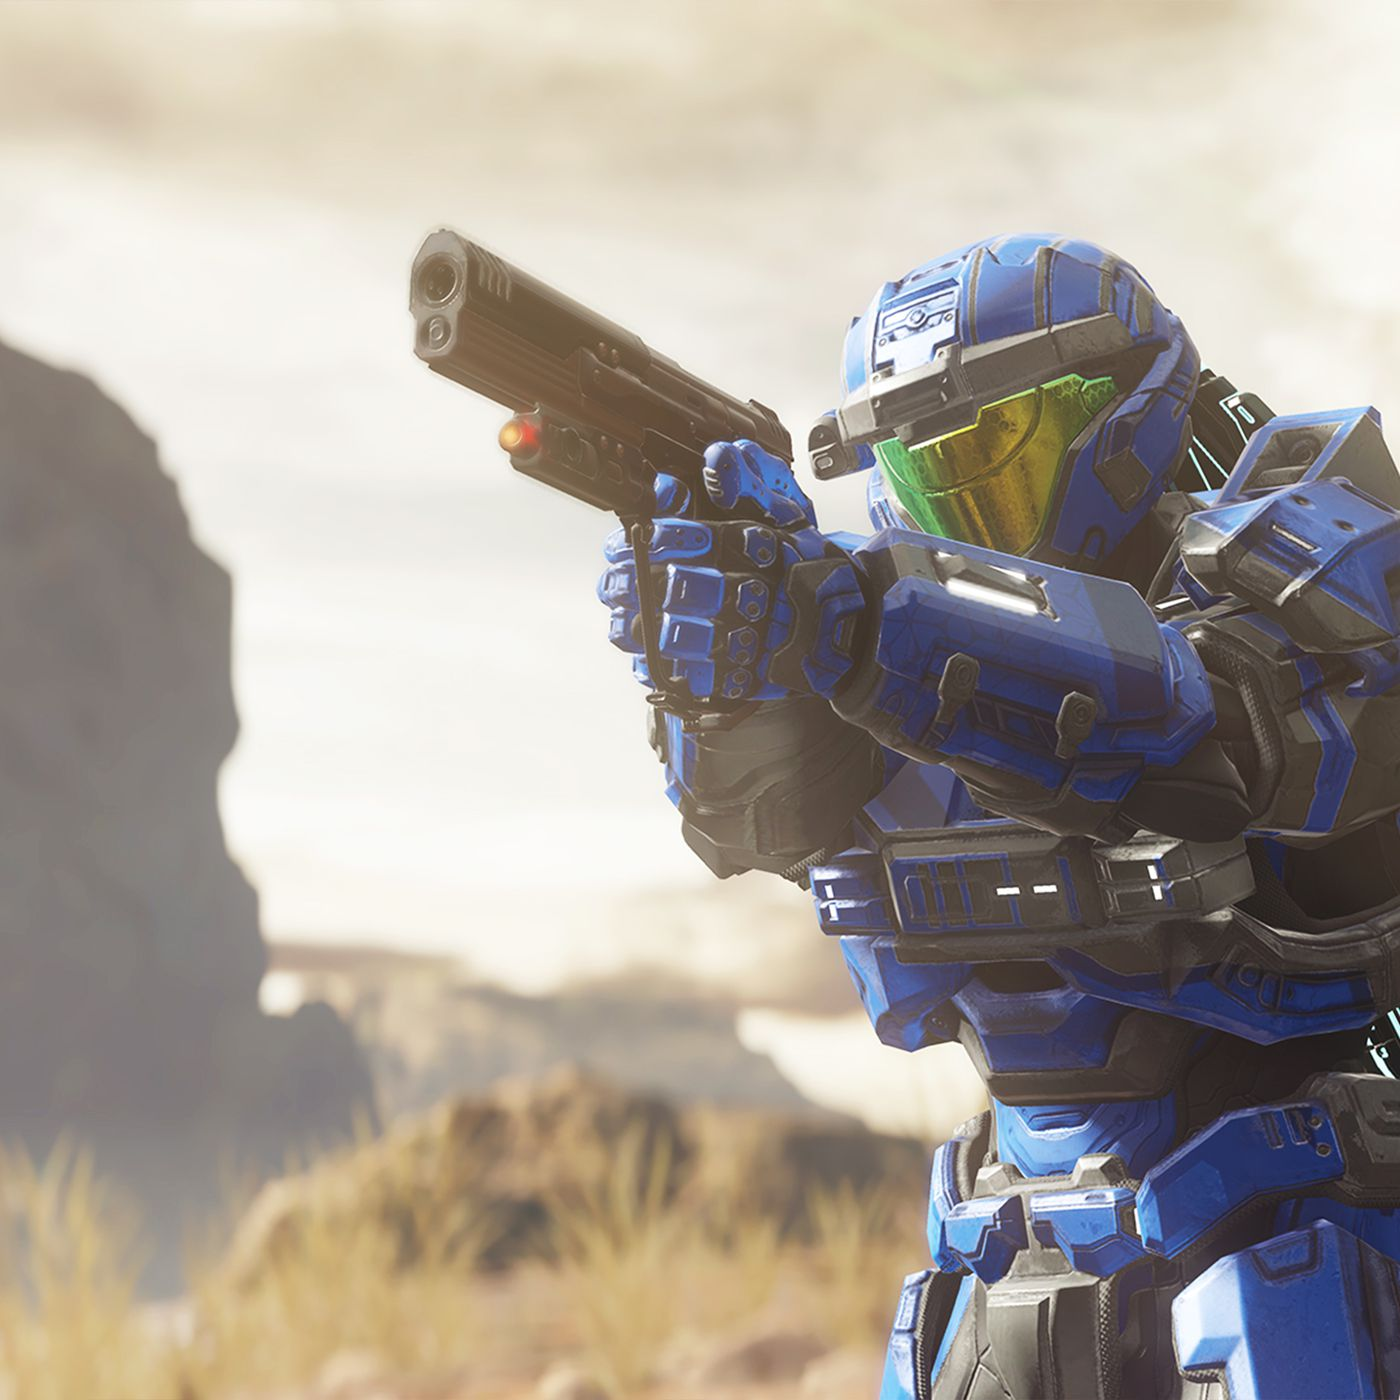 Halo 5's Forge mode is coming to PC for free this September - Polygon